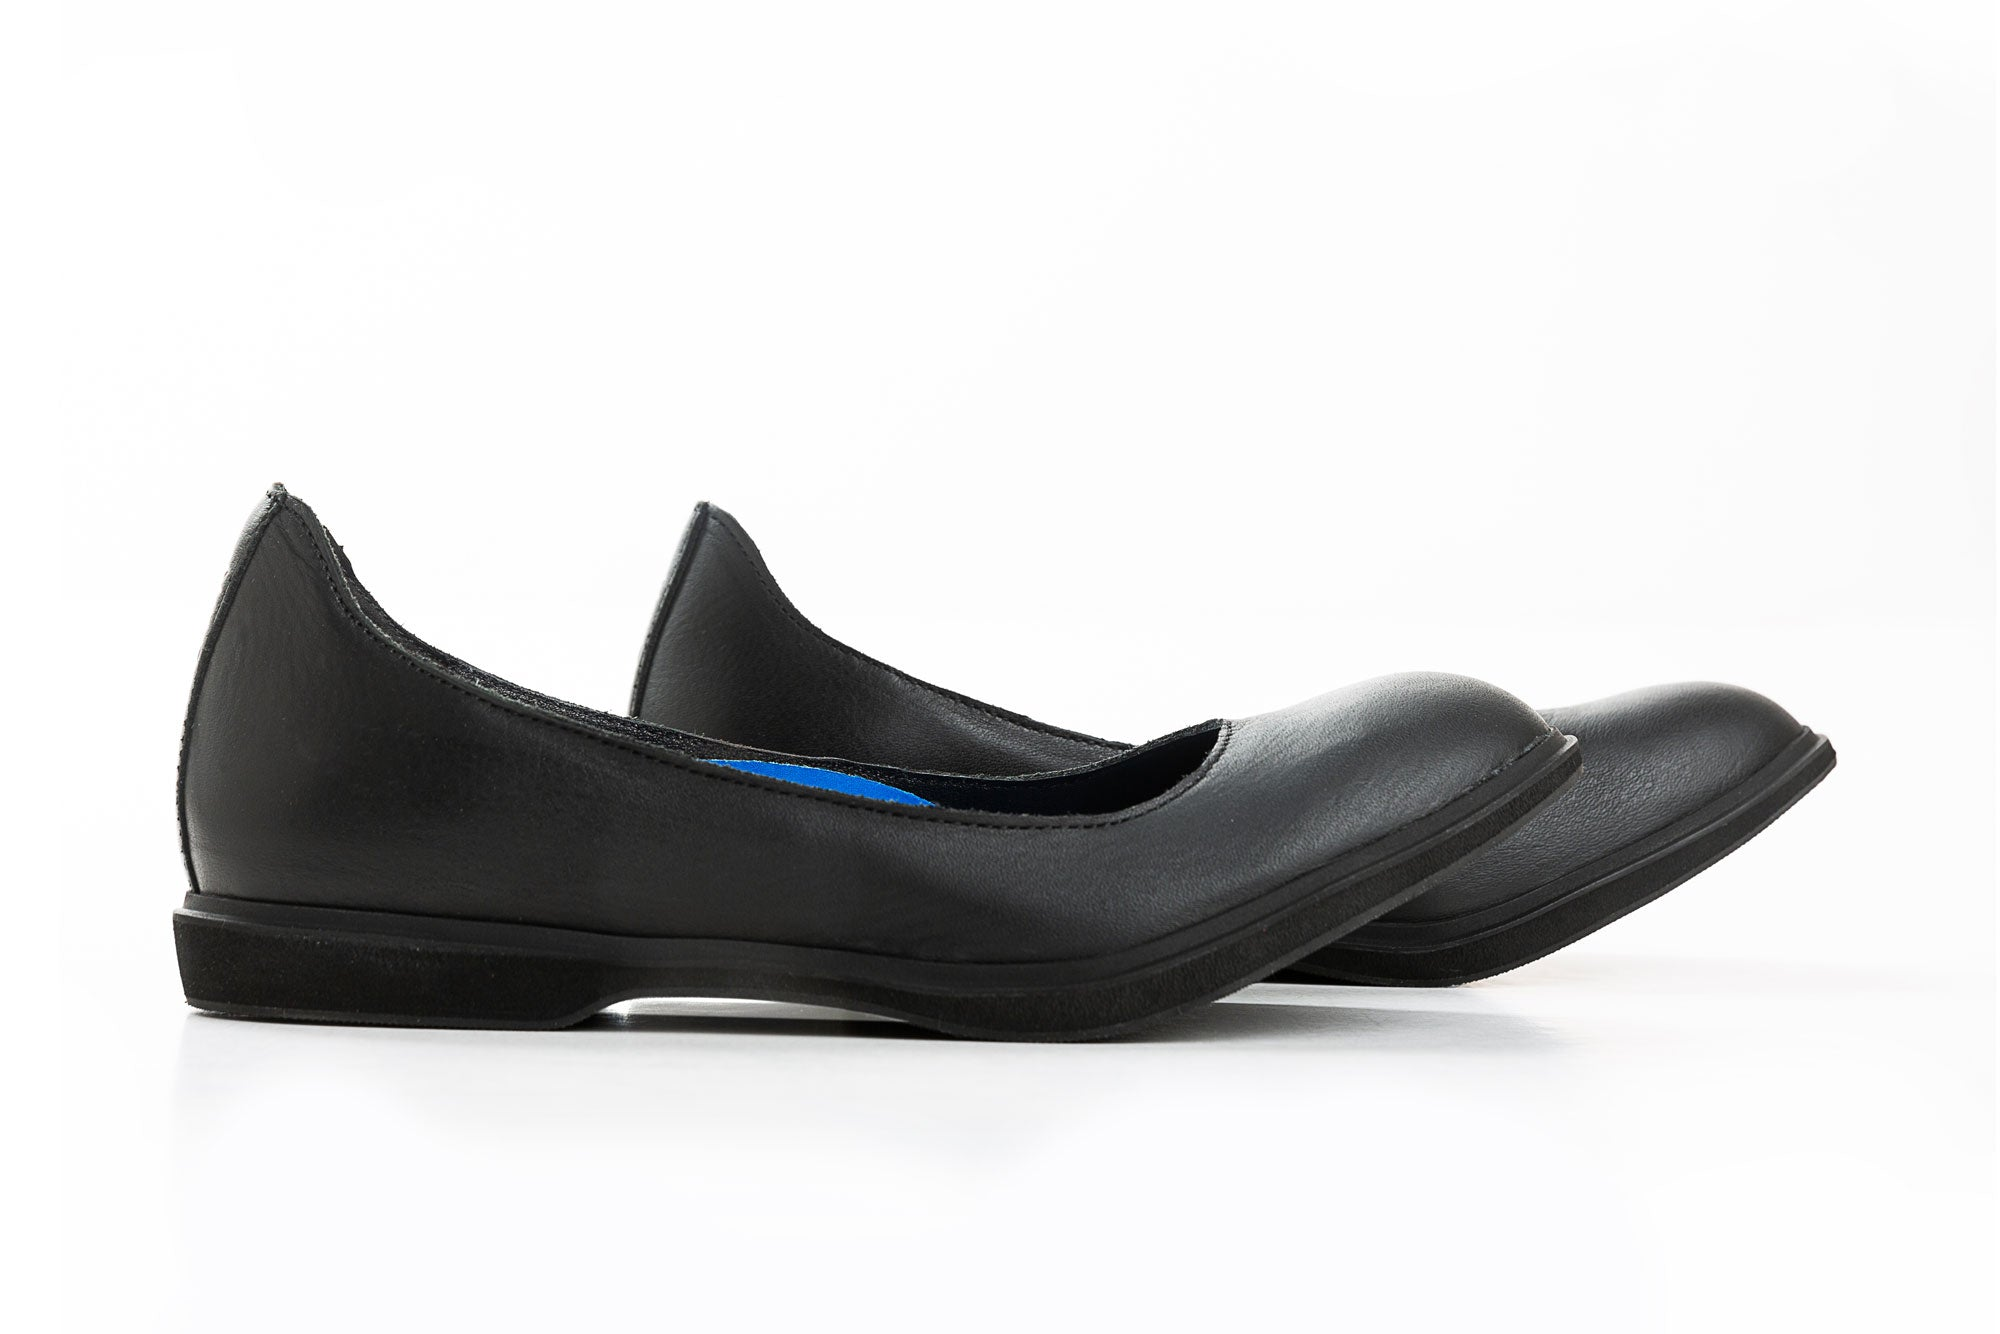 Most Comfortable Womens Flats For Work - MARATOWN - super cushioned sole - most comfortable shoes